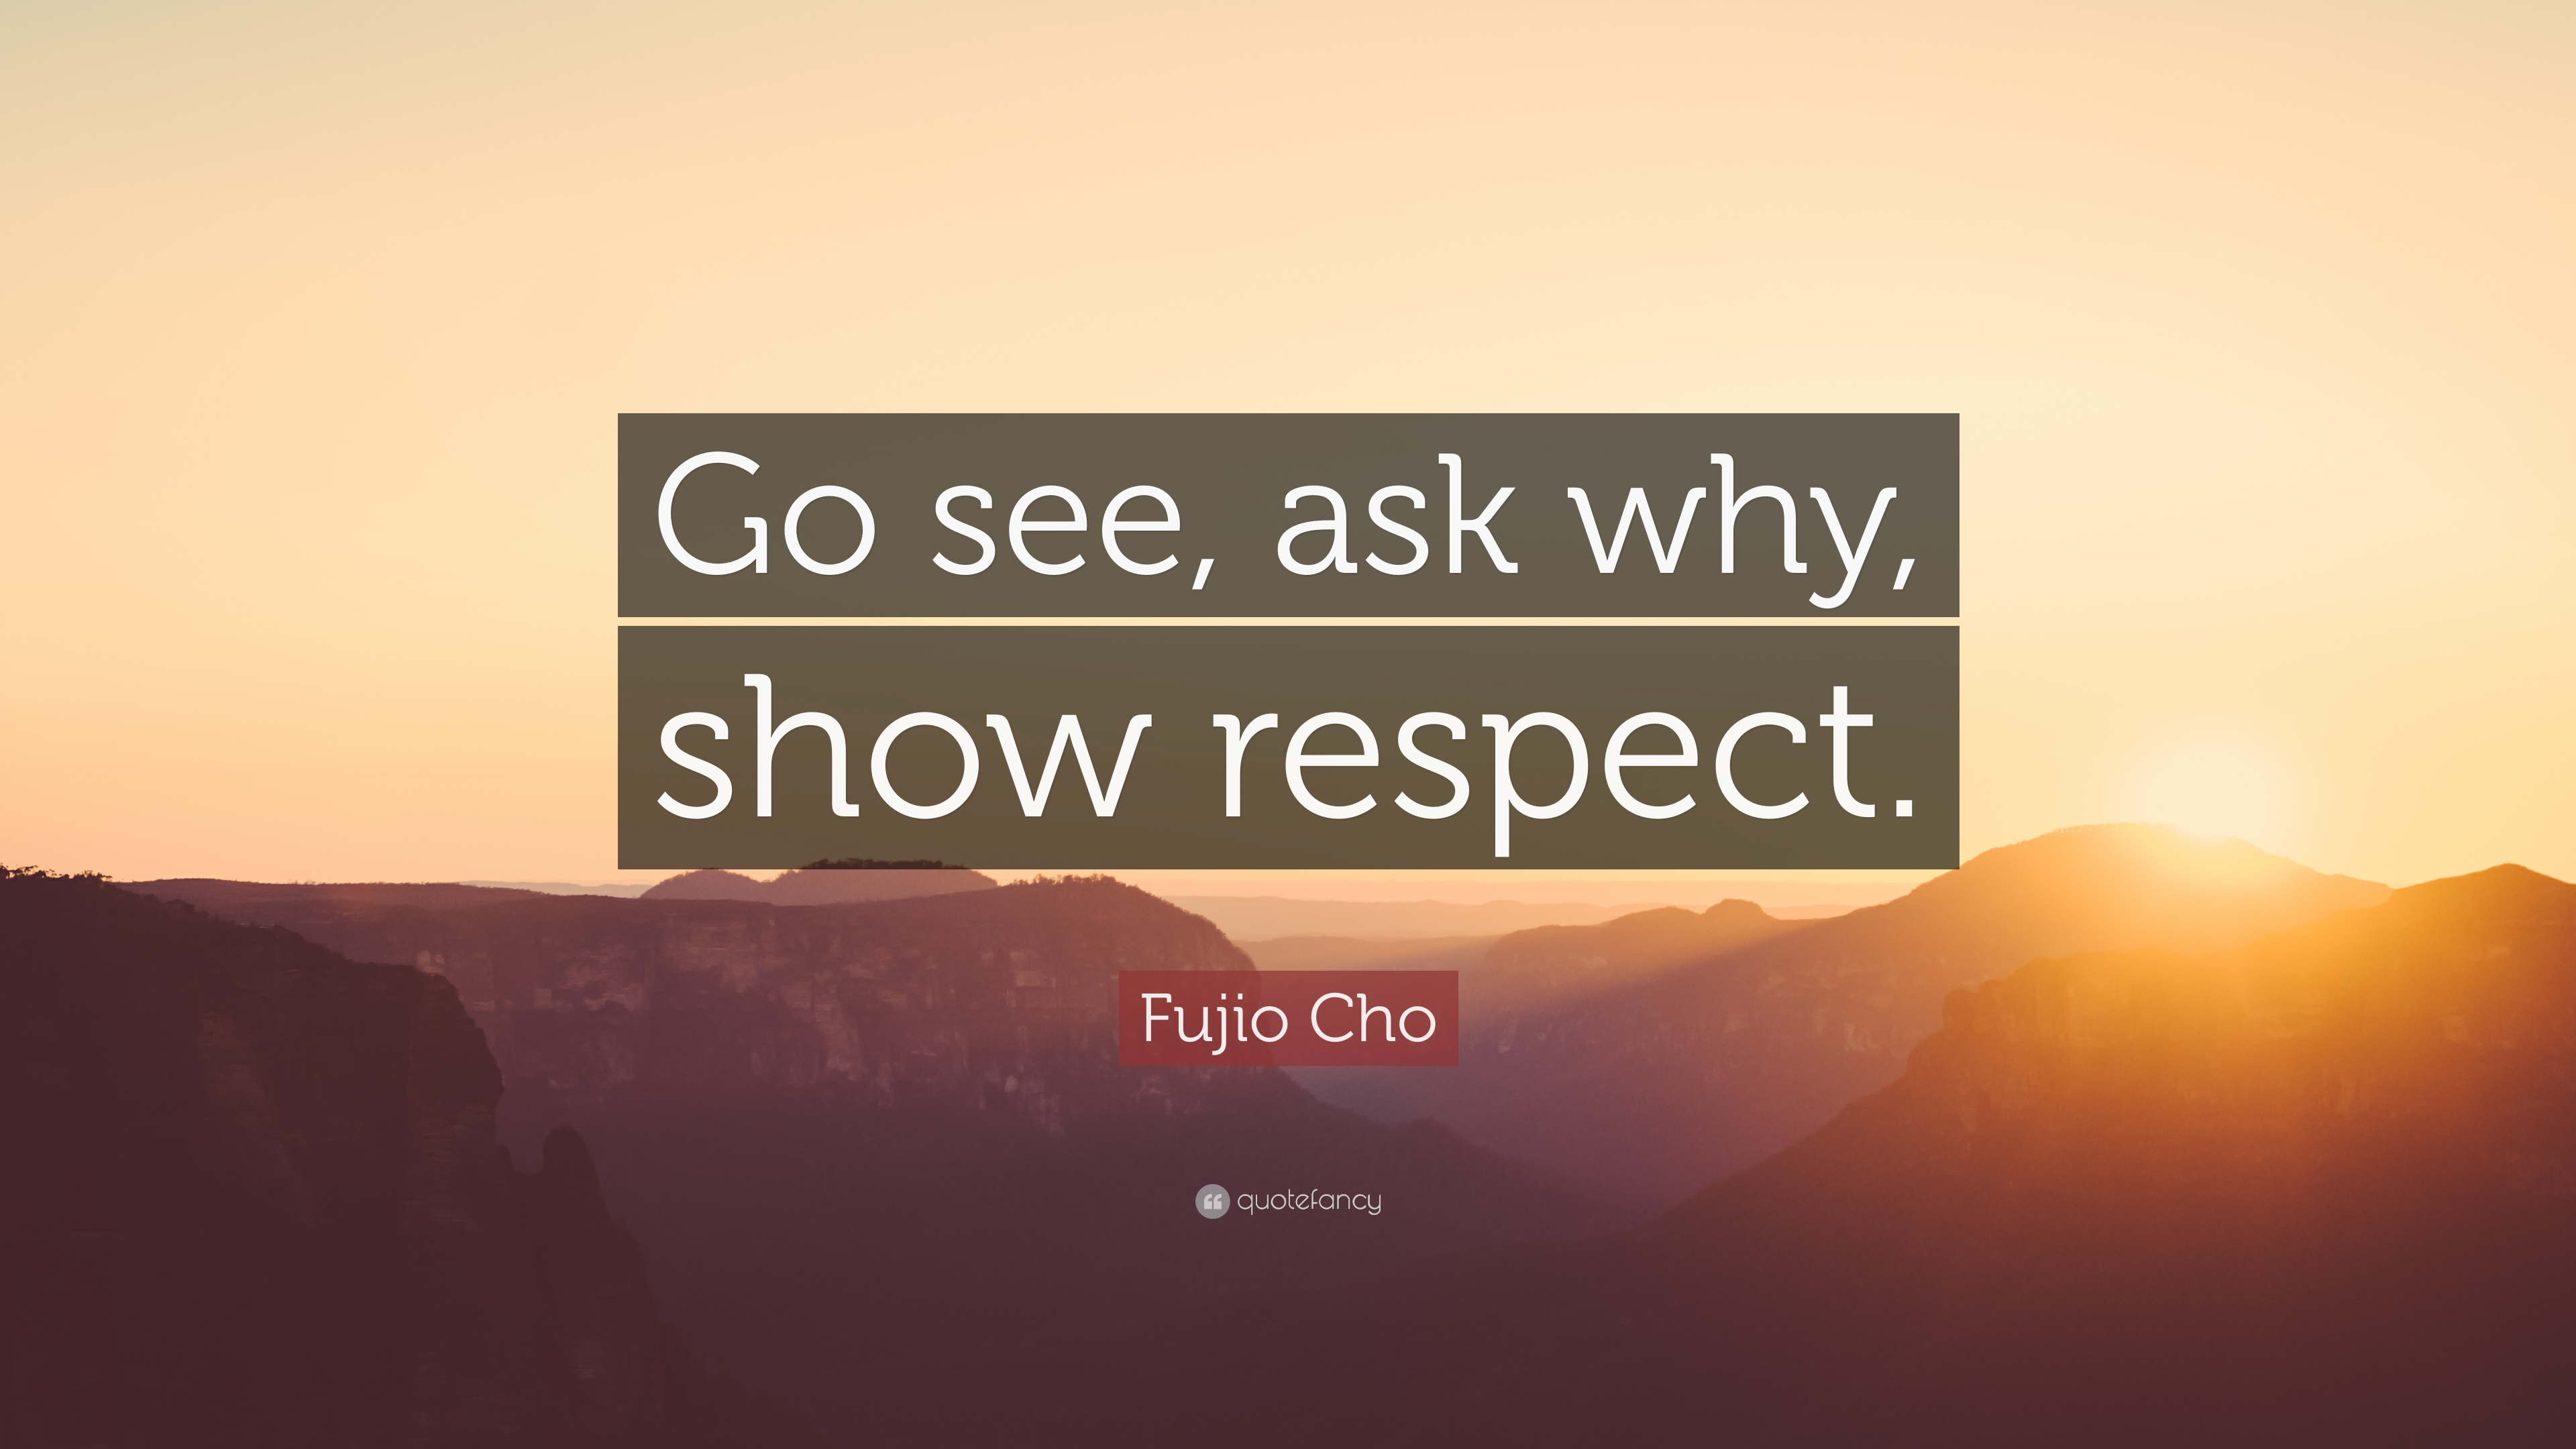 1598556-Fujio-Cho-Quote-Go-see-ask-why-show-respect